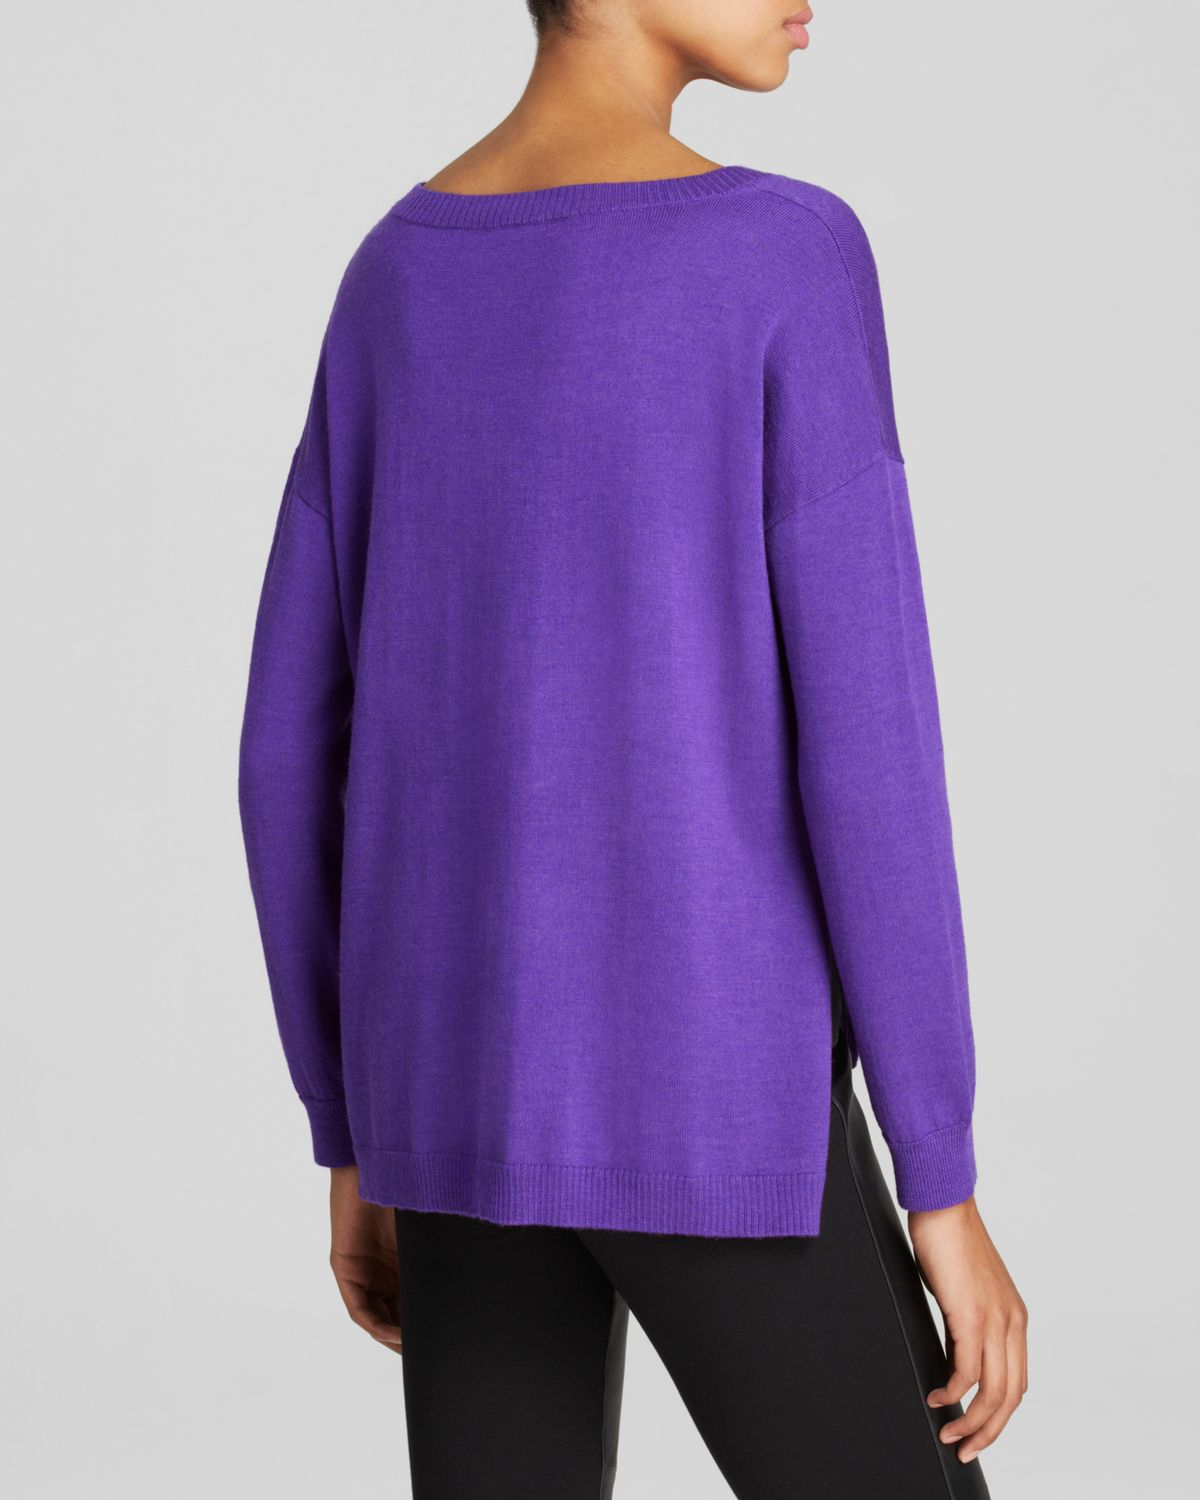 Eileen fisher Merino Wool Sweater in Purple | Lyst